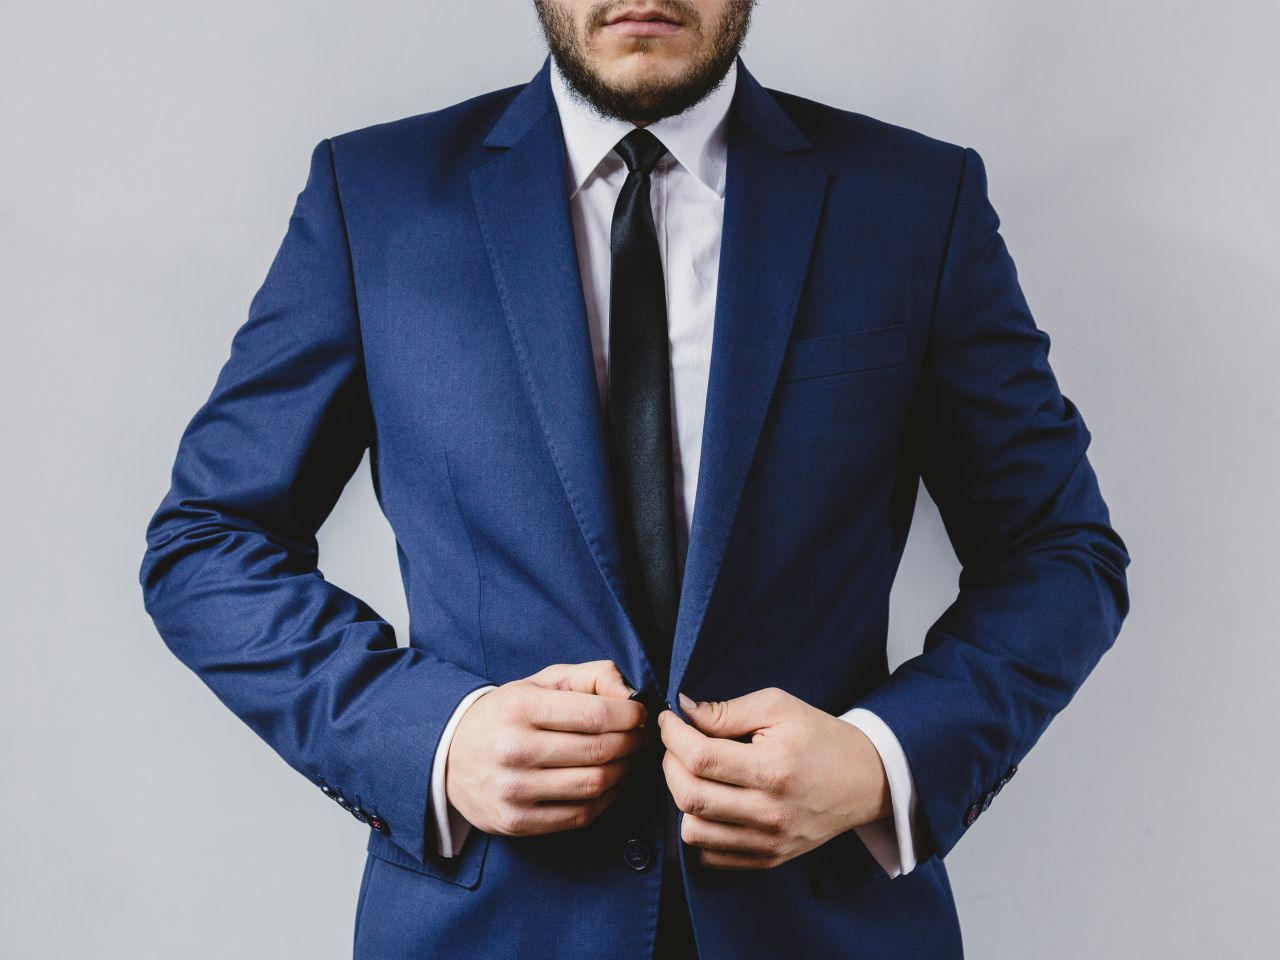 Grooming and Appearance: Mistakes That Will Ruin Your Business PR